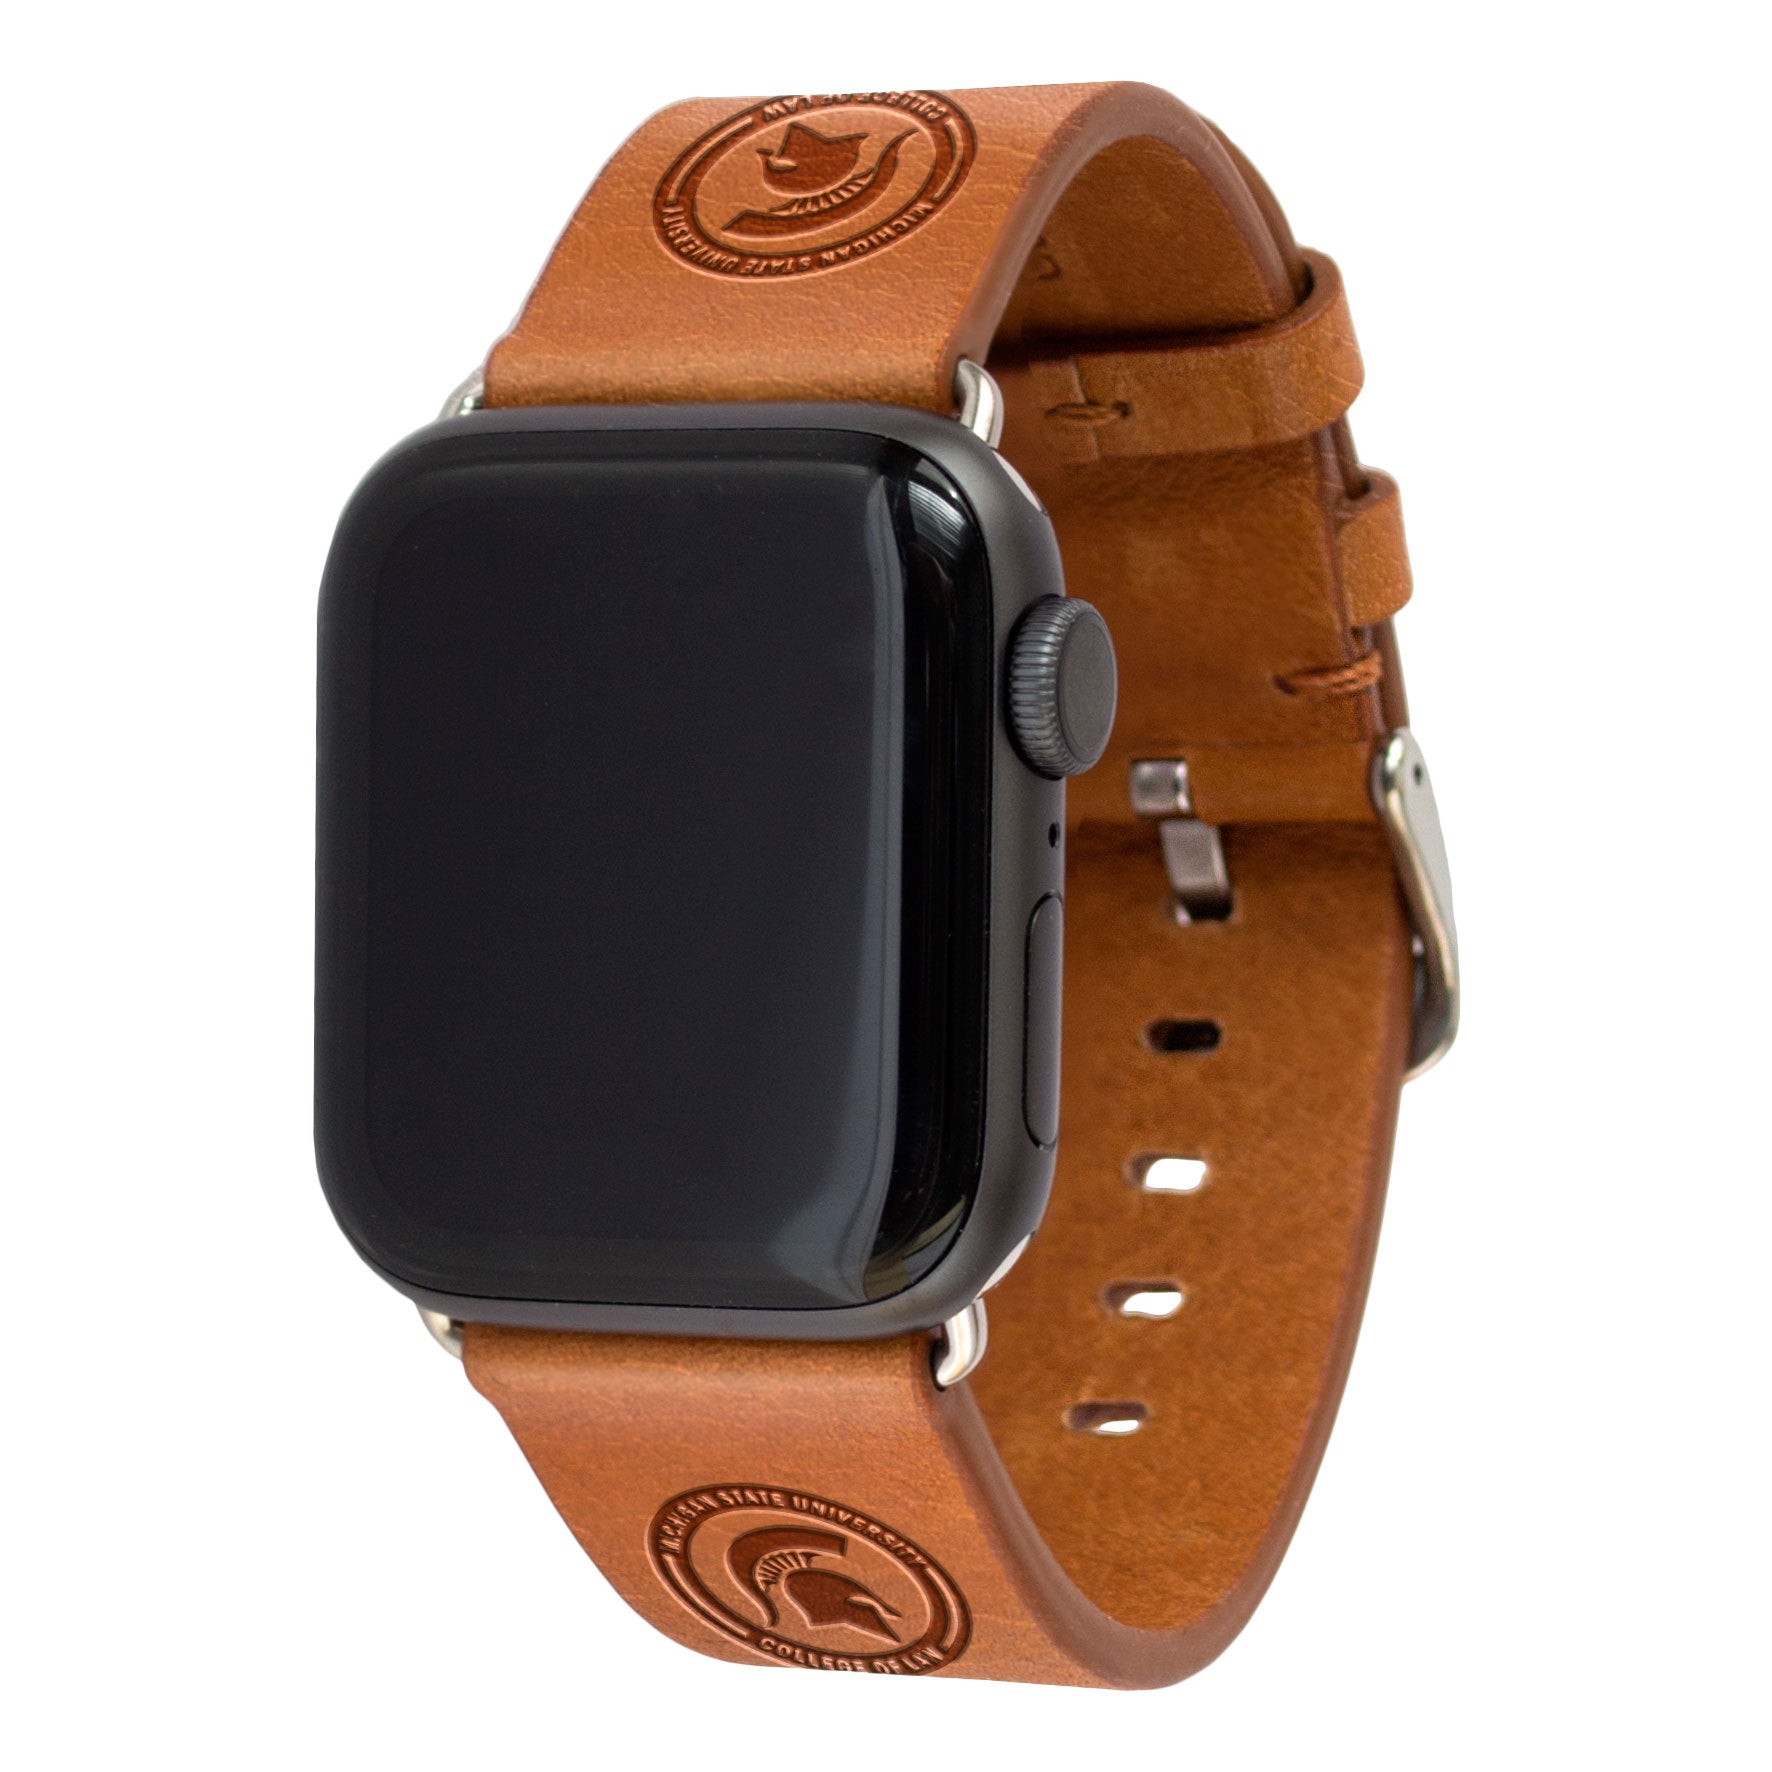 Michigan State University College of Law Leather Apple Watch Band - AffinityBands